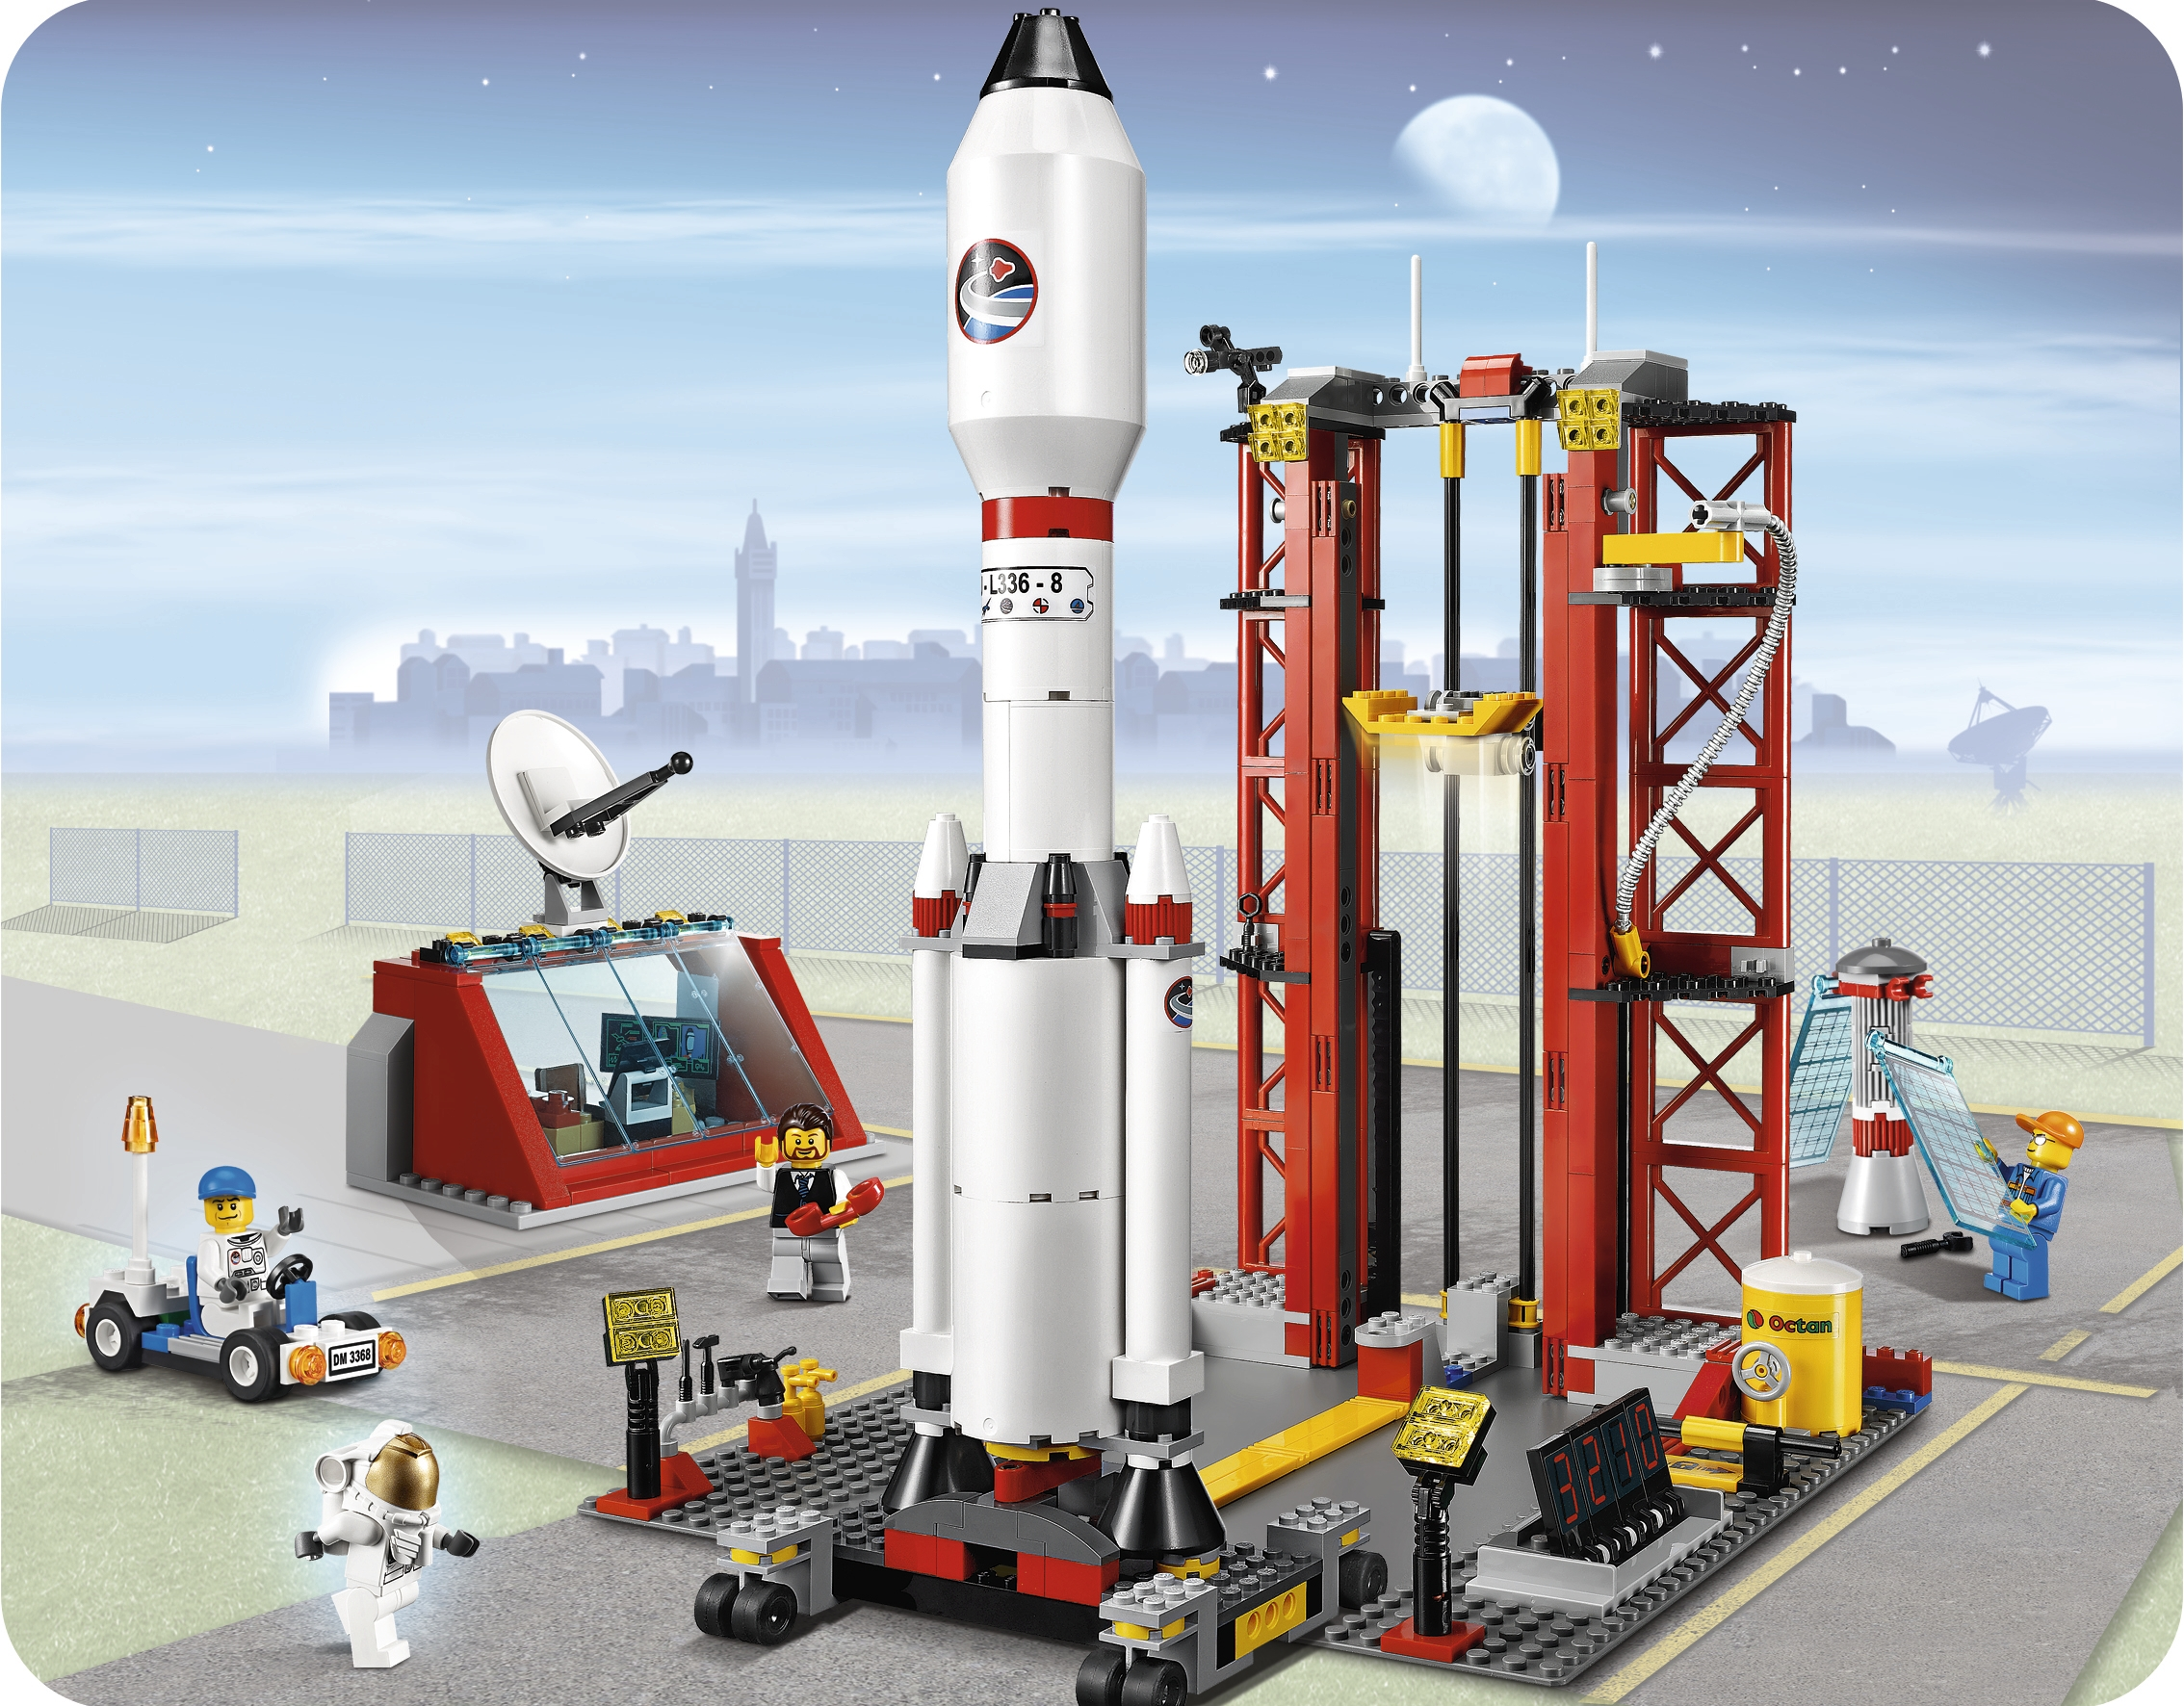 lego city space shuttle launch - photo #18